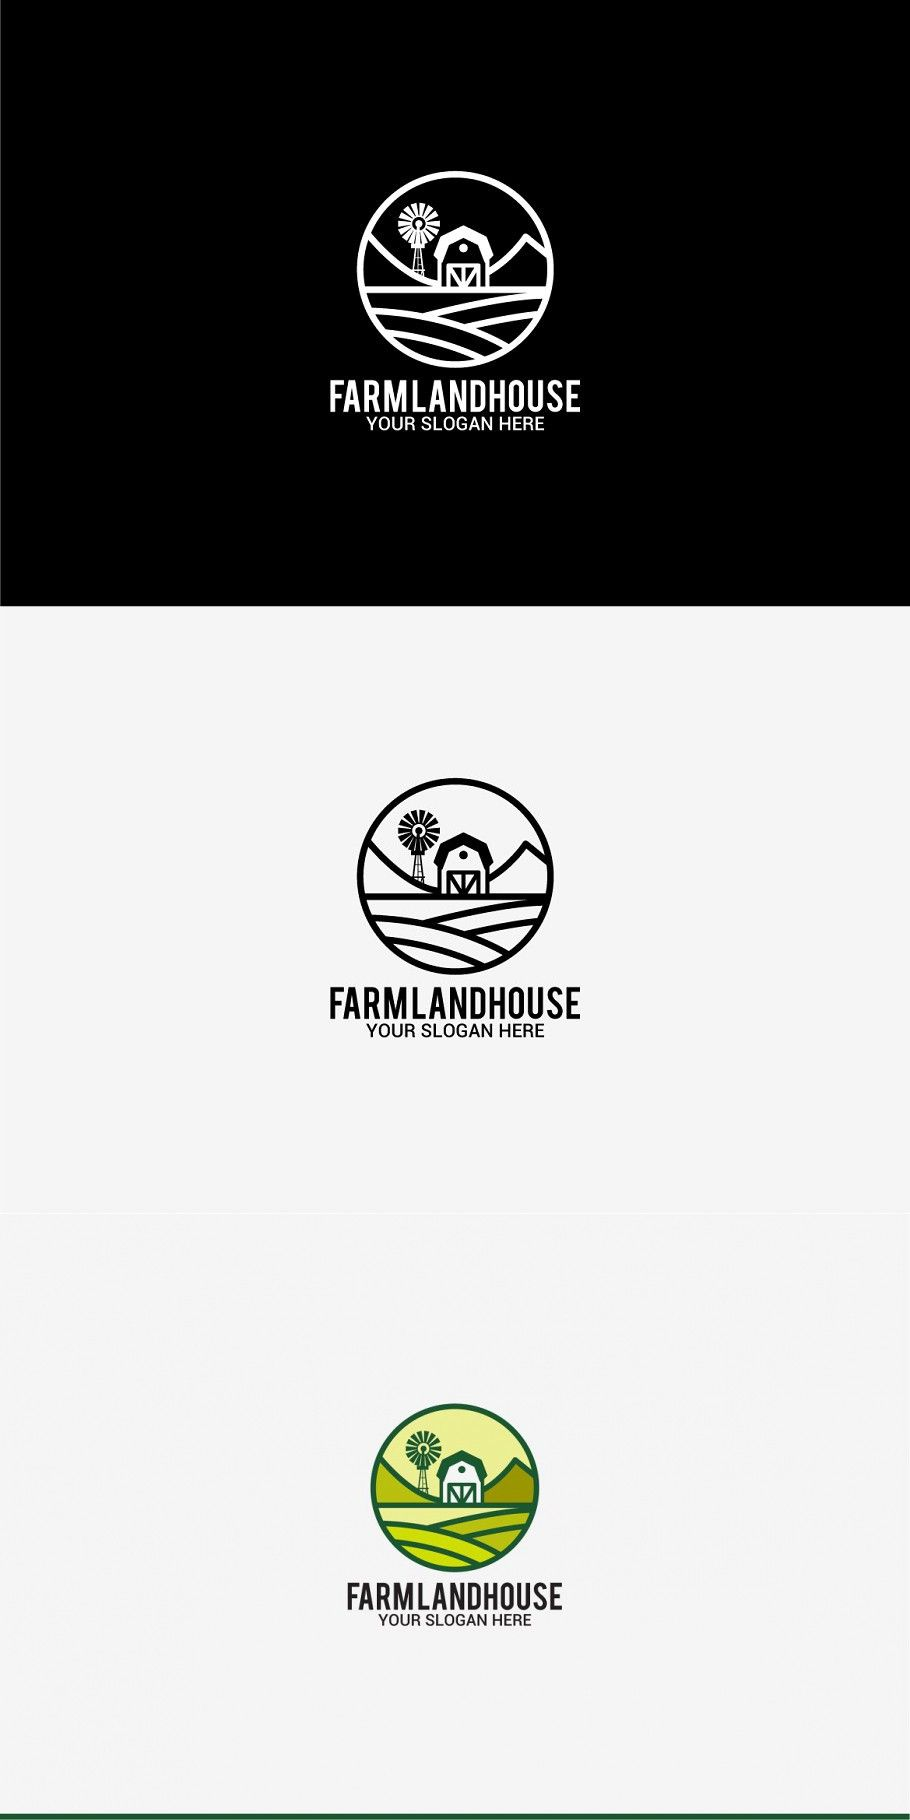 Farm land house in 2020 Logo templates, Font names